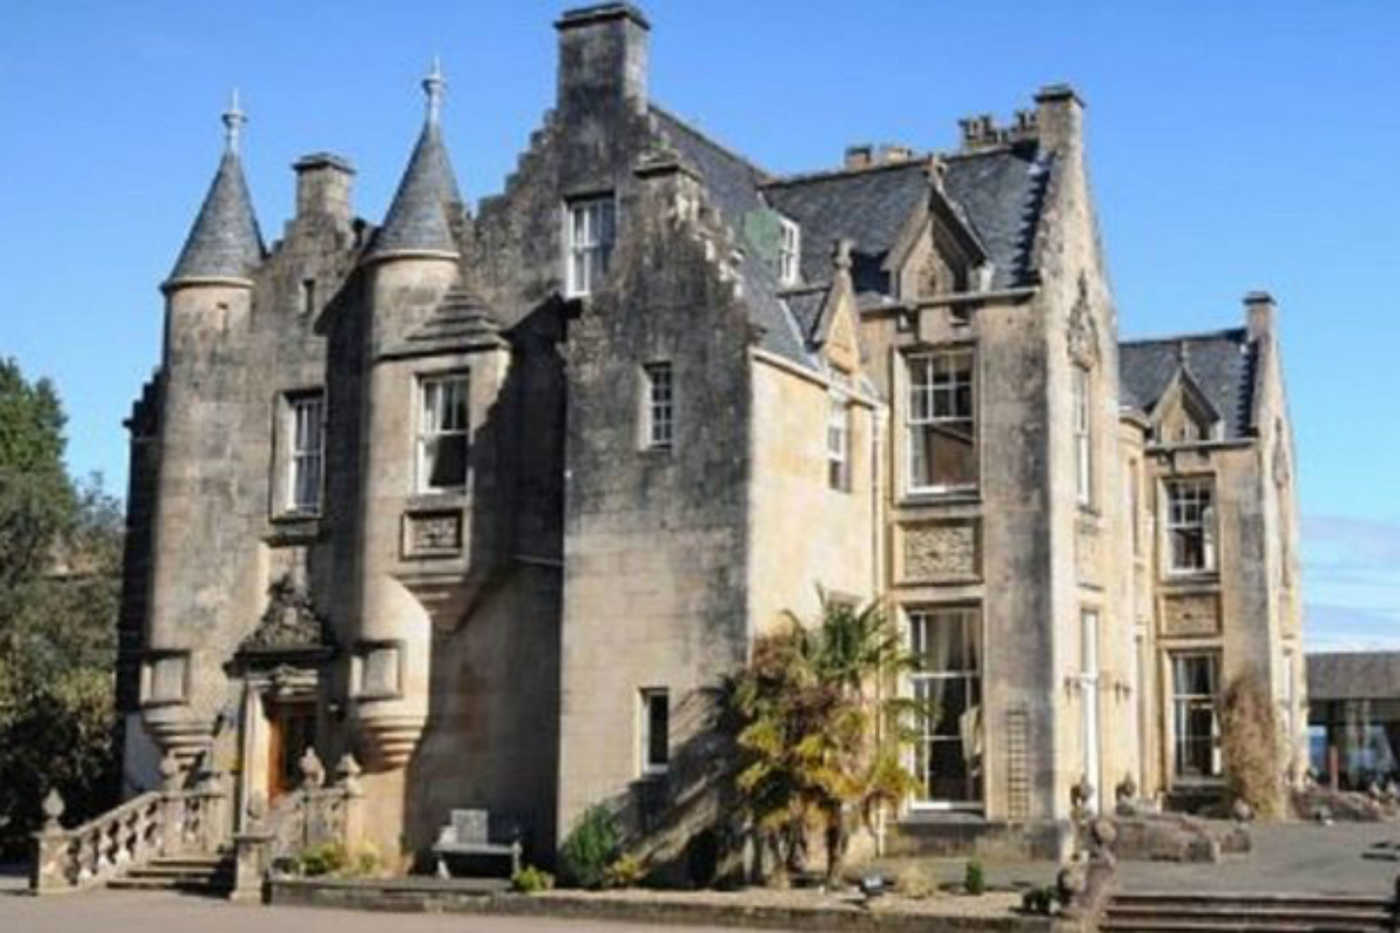 home and interiors scotland.  Homes And Interiors Scotland Scottish Castles U0026 Manor Houses Vacation Tours 100 Dopo Domani Interior